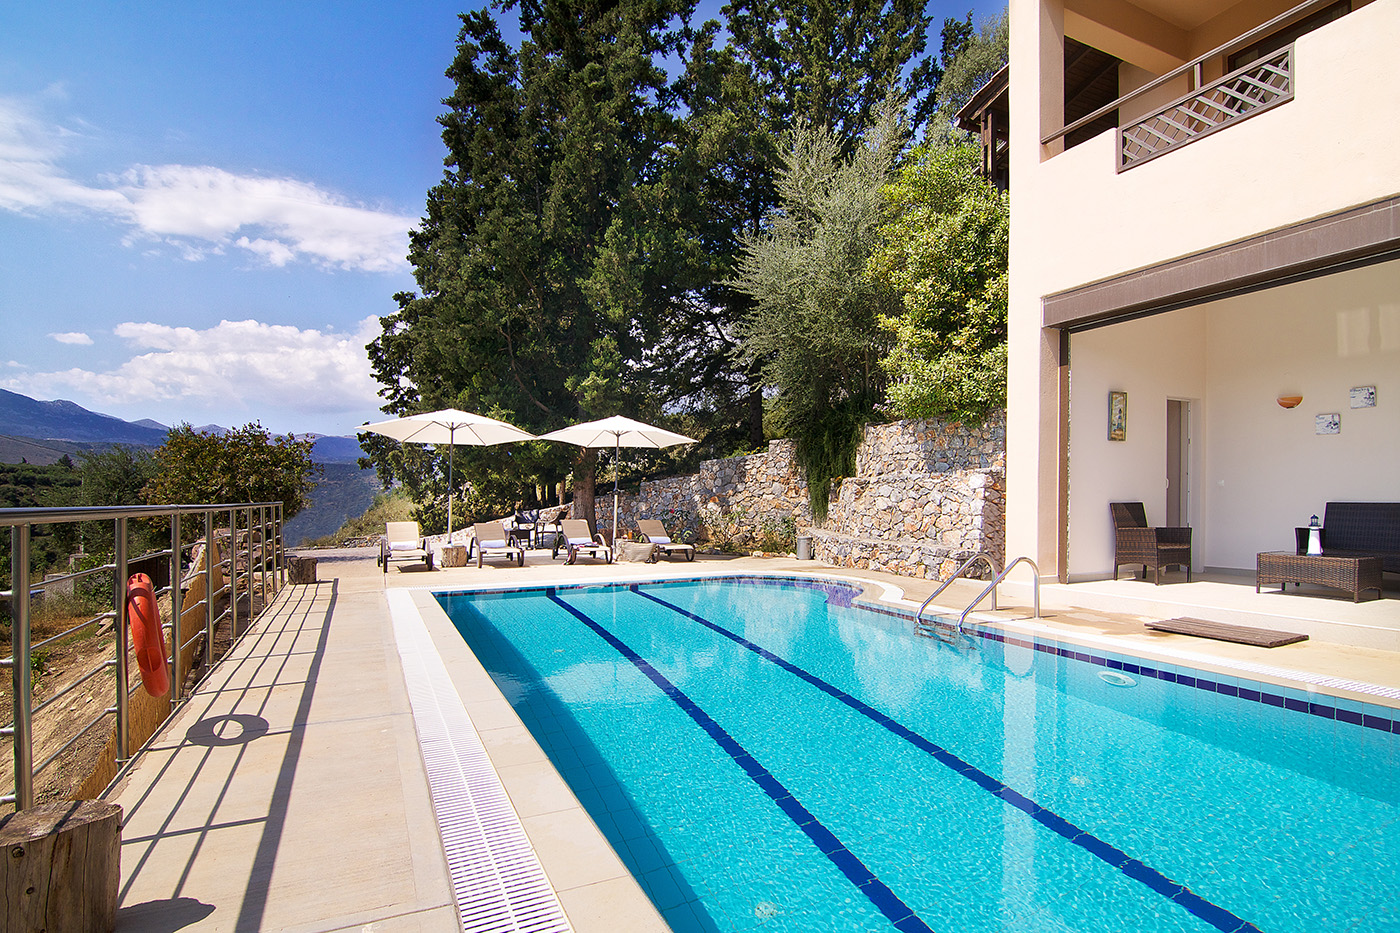 Outdoors - Private swimming pool